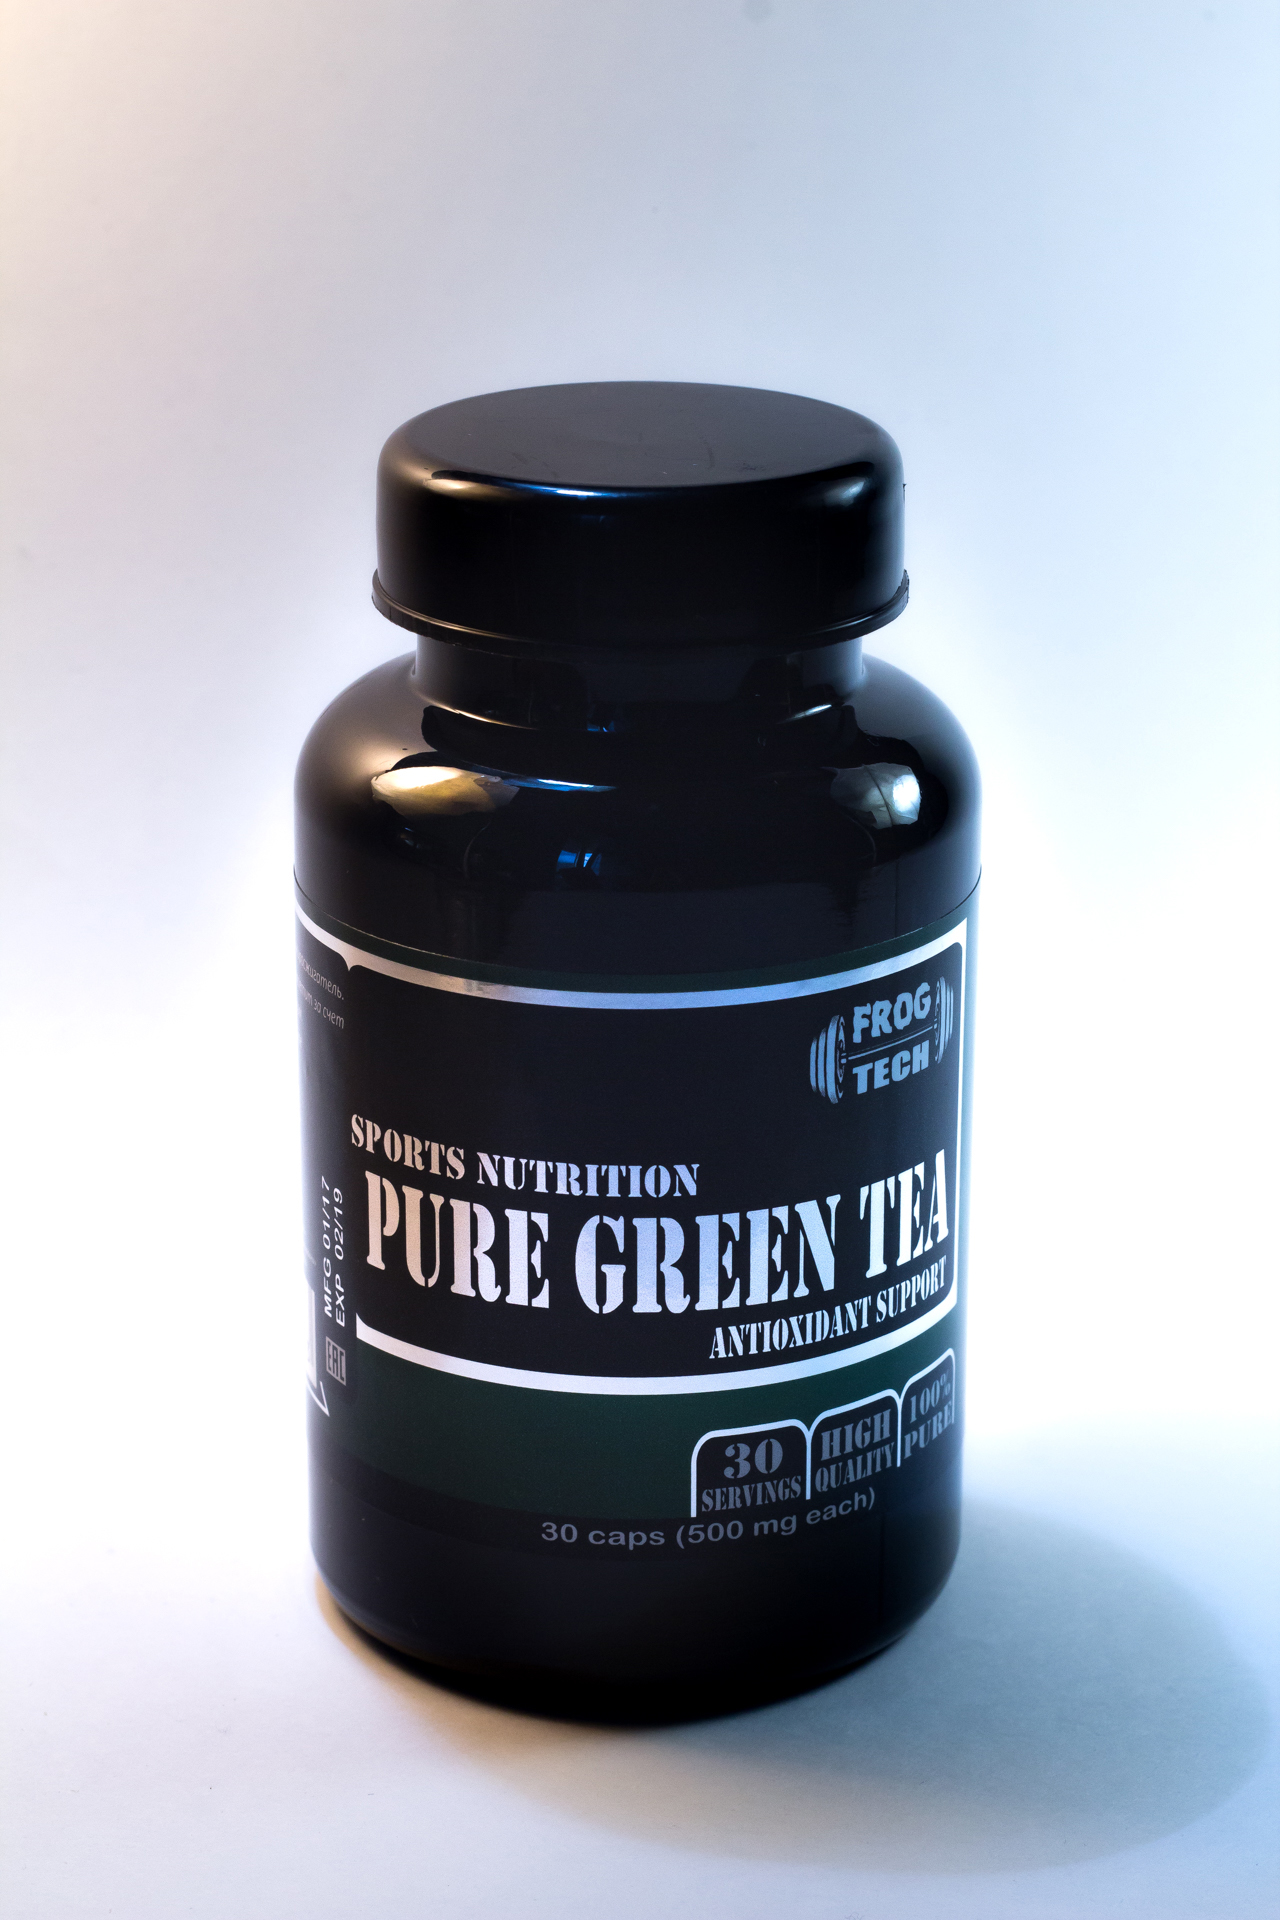 Pure Green Tea Extract (Frog Tech)